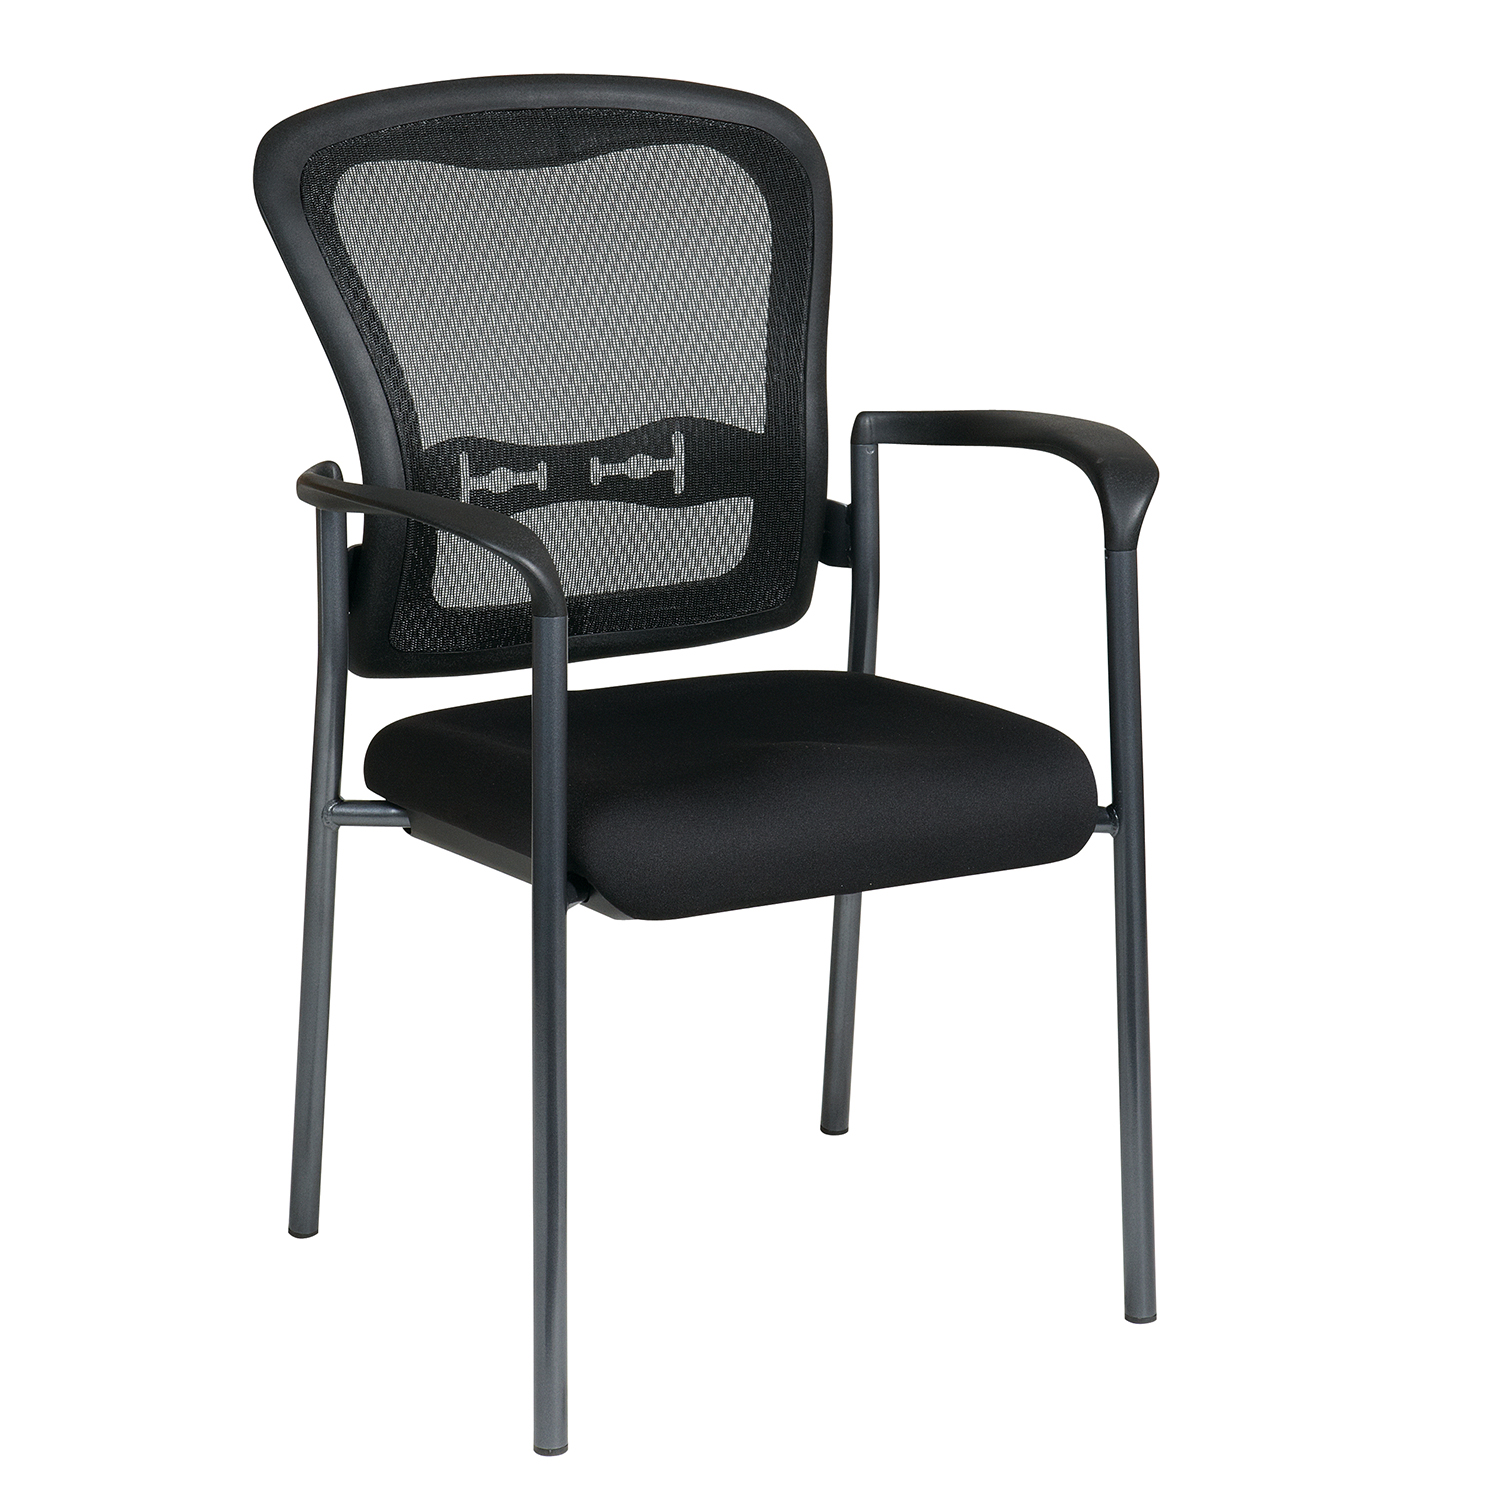 Titanium Finish Chair with Arms